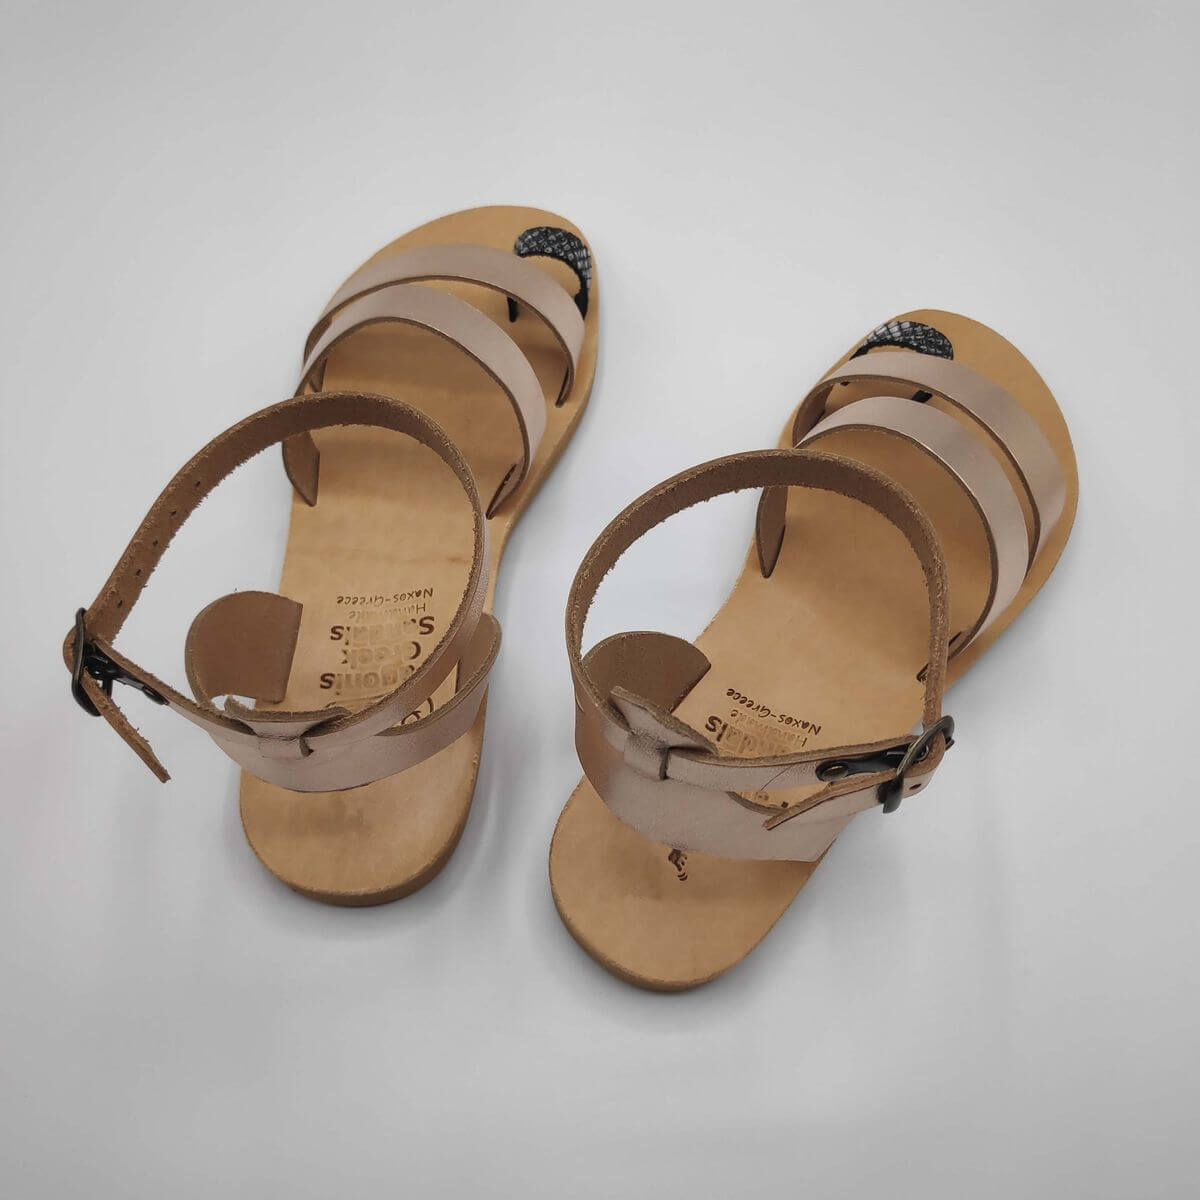 Rose gold leather dressy sandals with two straps, toe ring and high ankle strap, back view